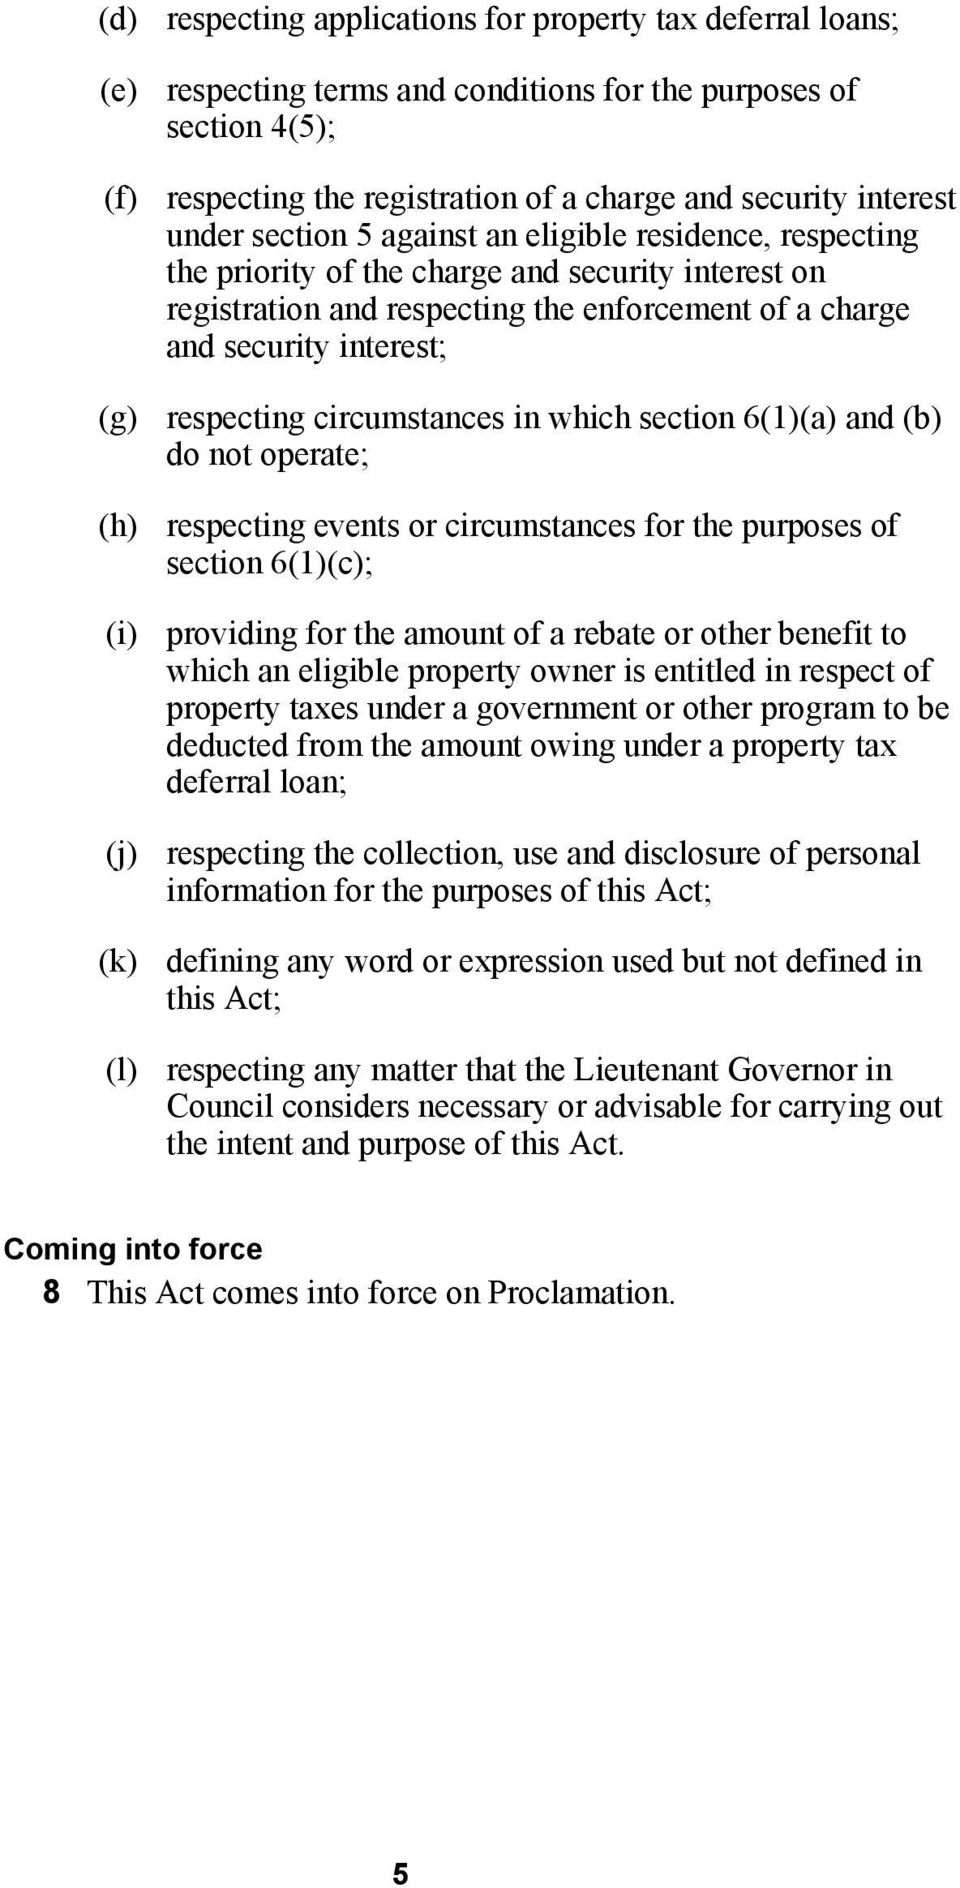 respecting circumstances in which section 6(1)(a) and (b) do not operate; (h) respecting events or circumstances for the purposes of section 6(1)(c); (i) providing for the amount of a rebate or other